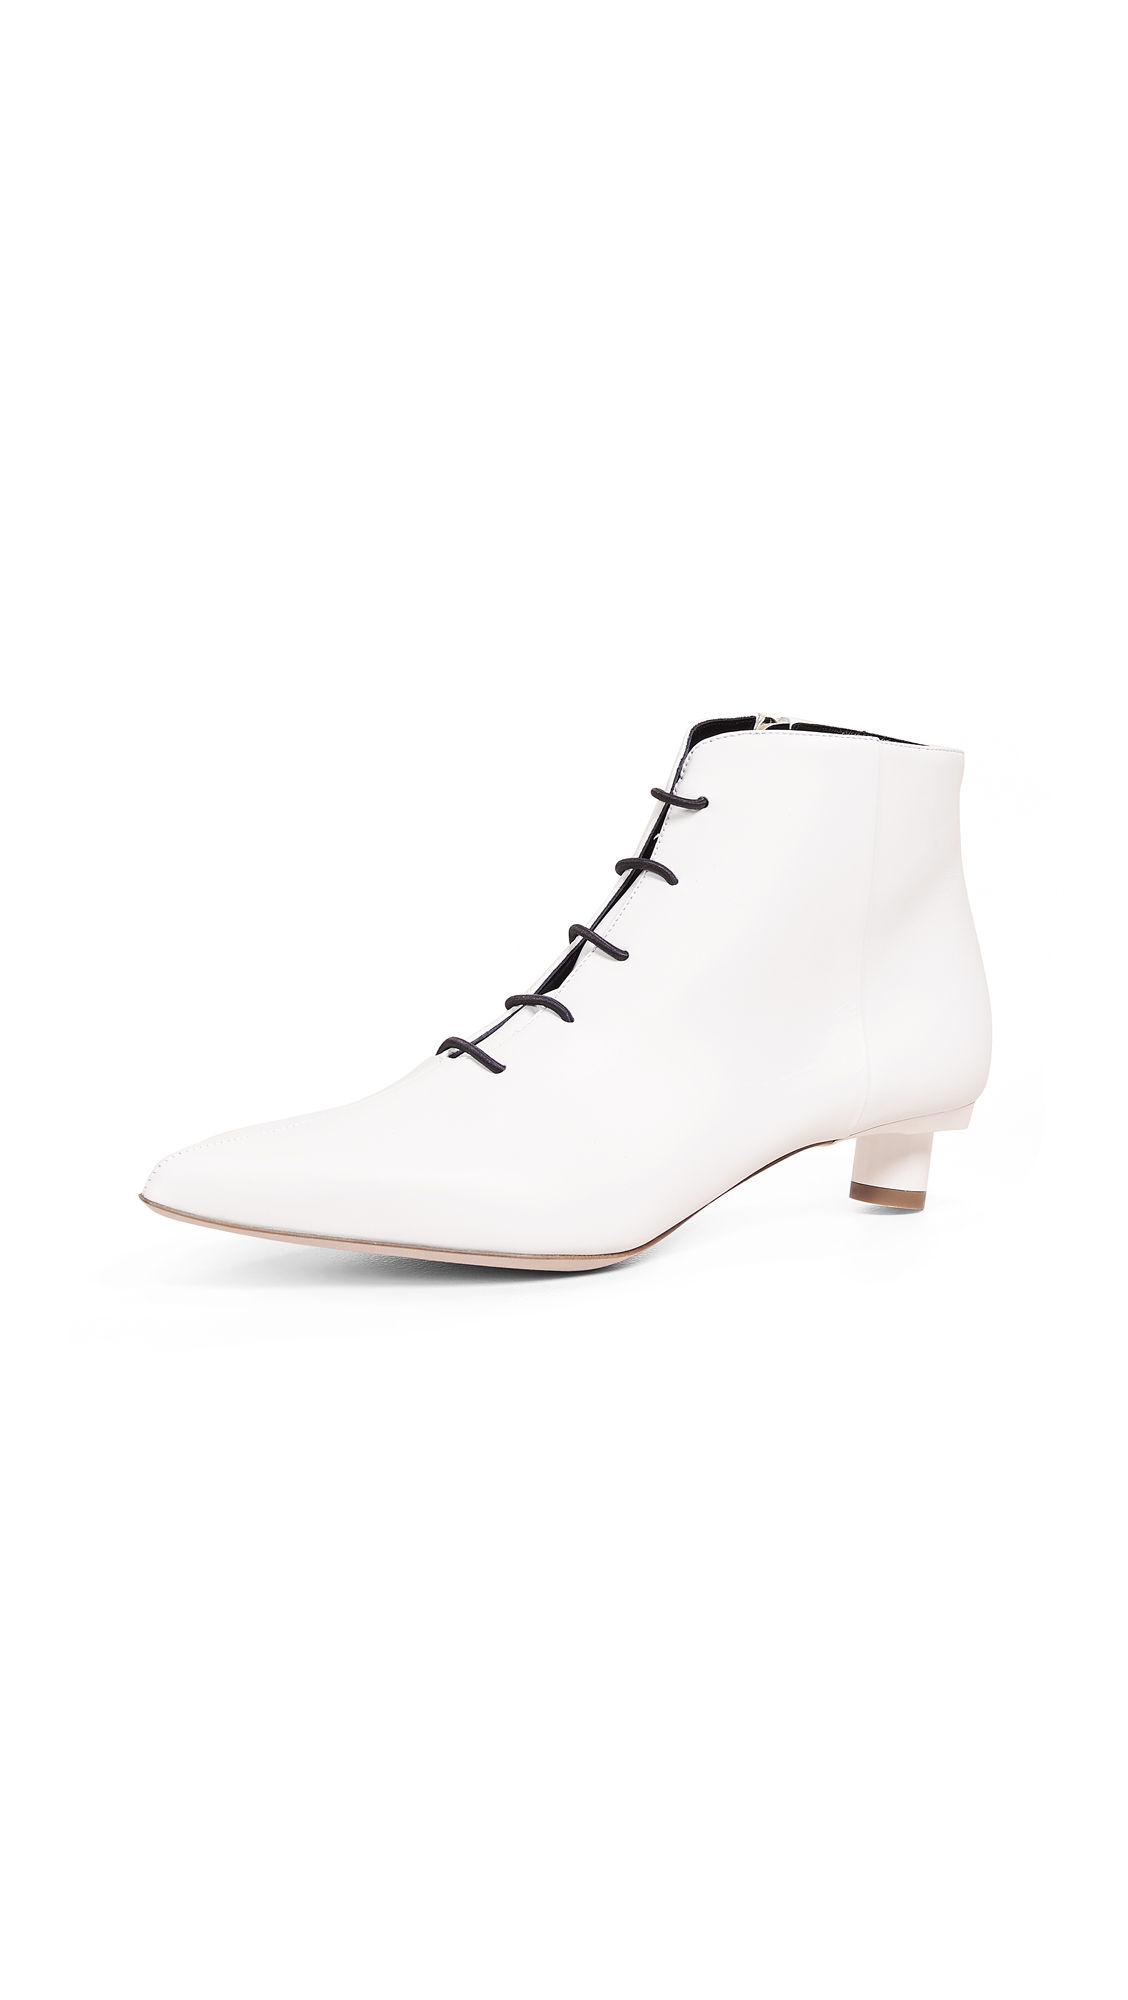 Tibi Asher Boots